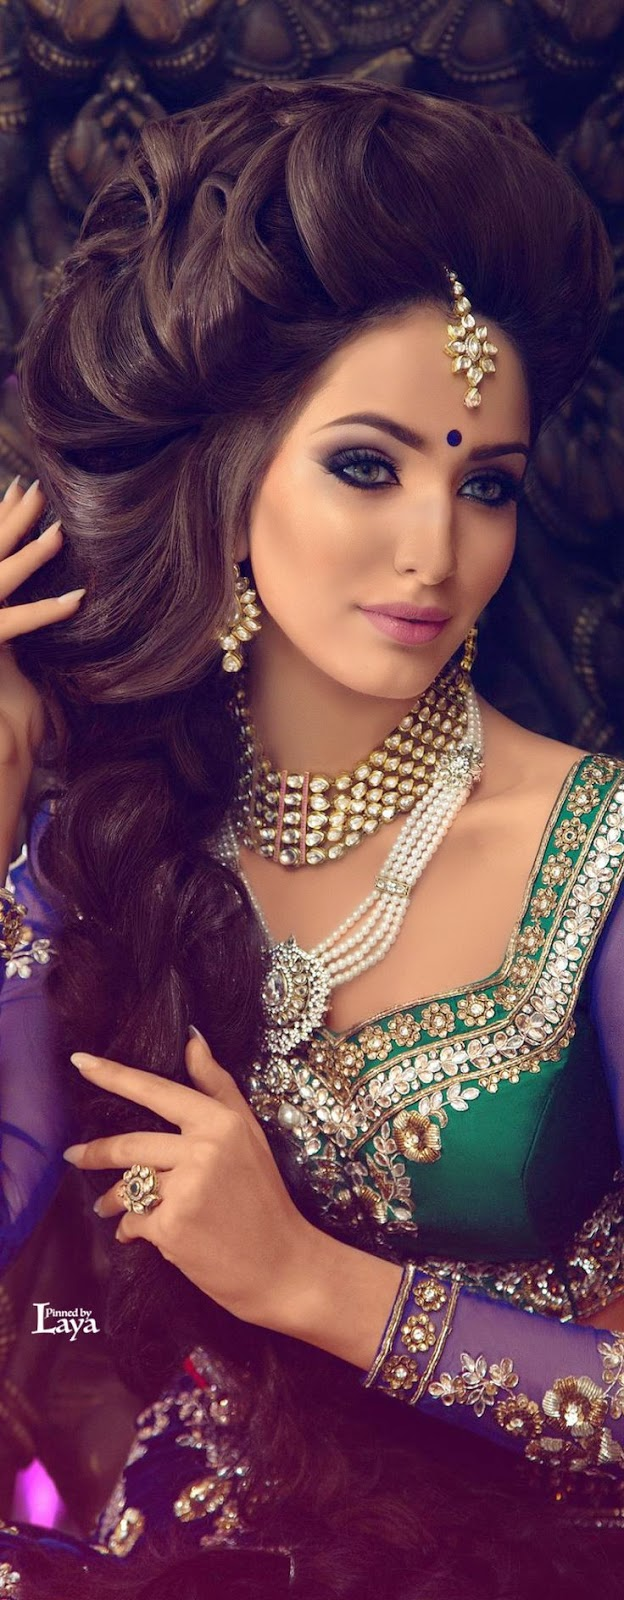 new indian bridal makeup photos 2015 - hair style